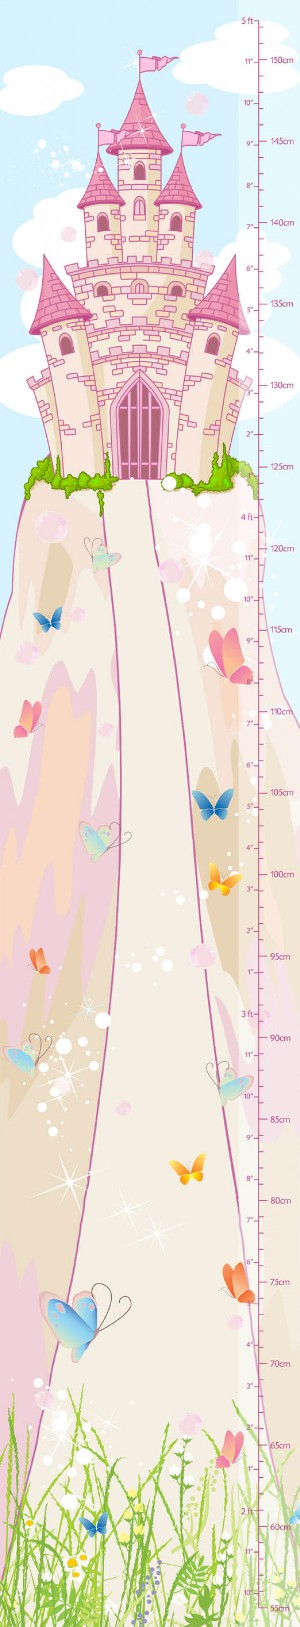 Image for Height Chart : Castles : Keep track of your kid's height